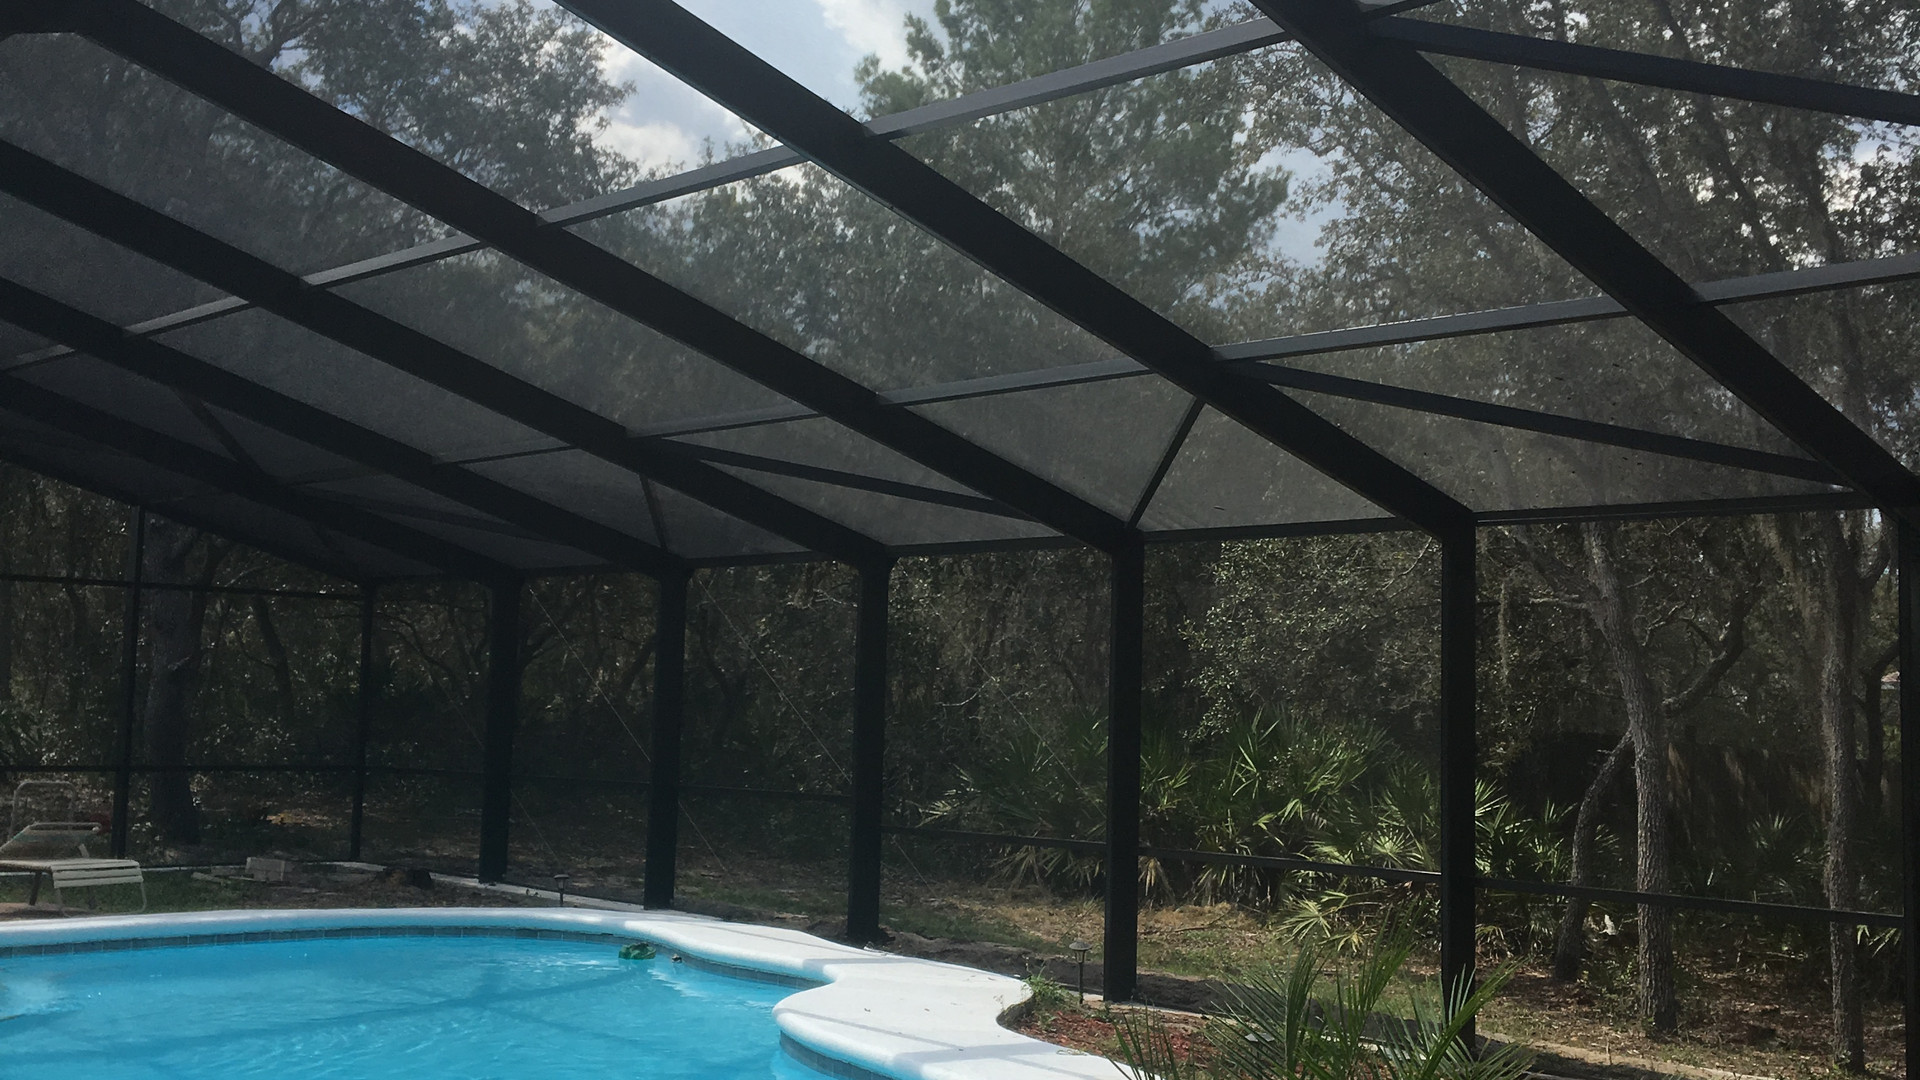 40x60 pool enclosure -poinciana fl